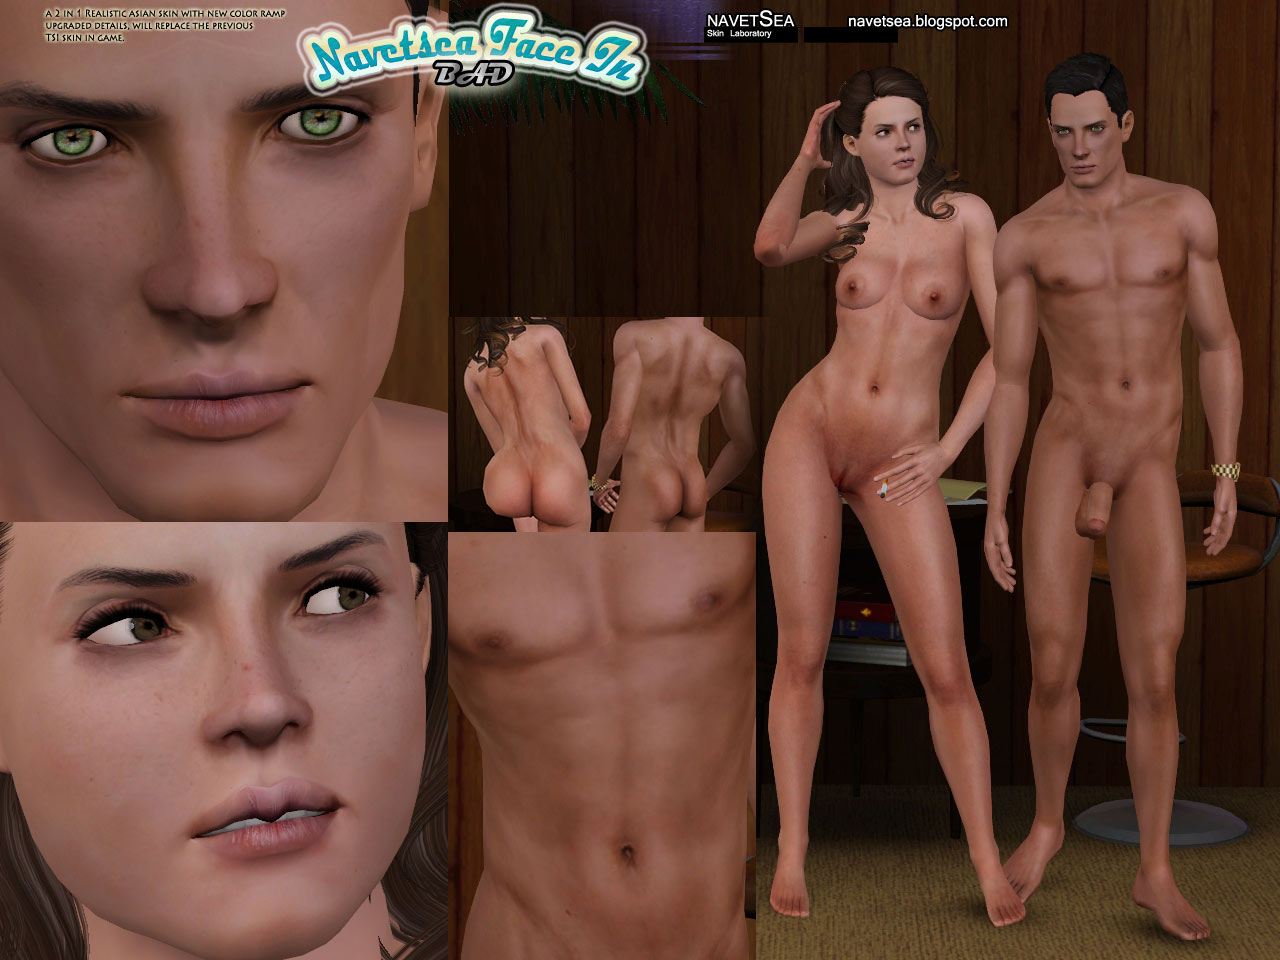 Nigro & girl 3d nude xxx comic